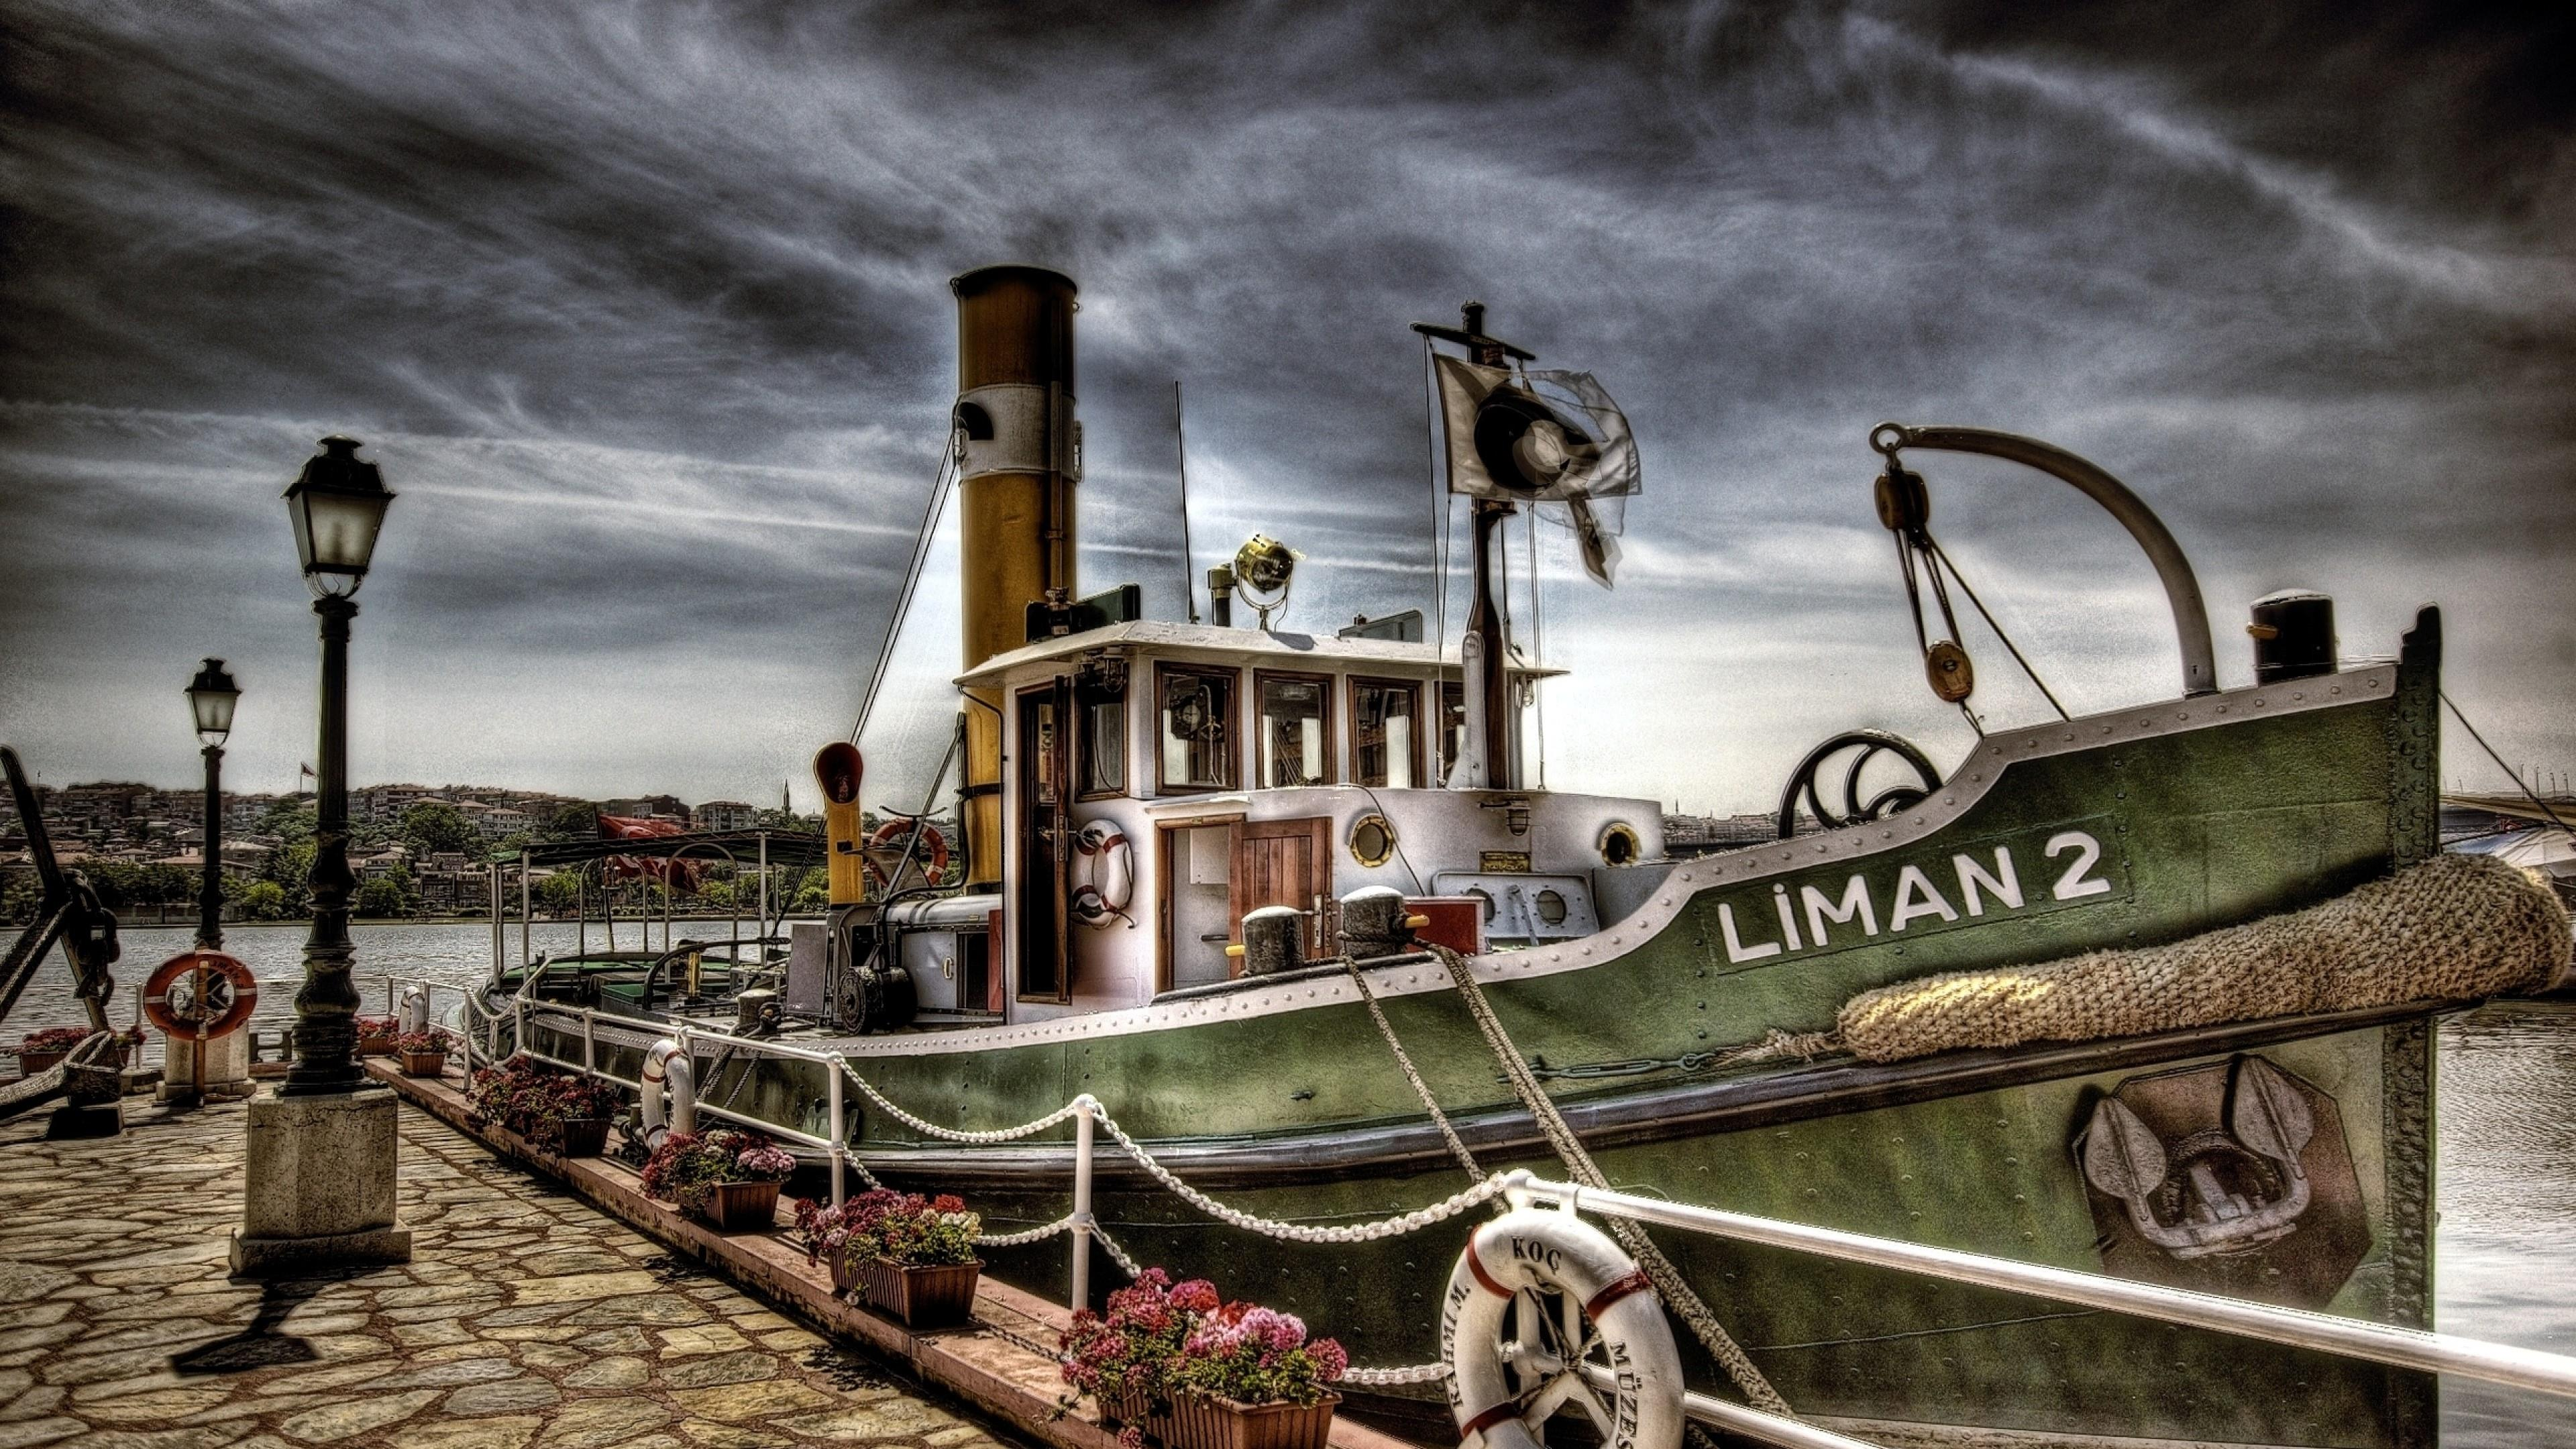 Liman 2 tugboat  wallpaper